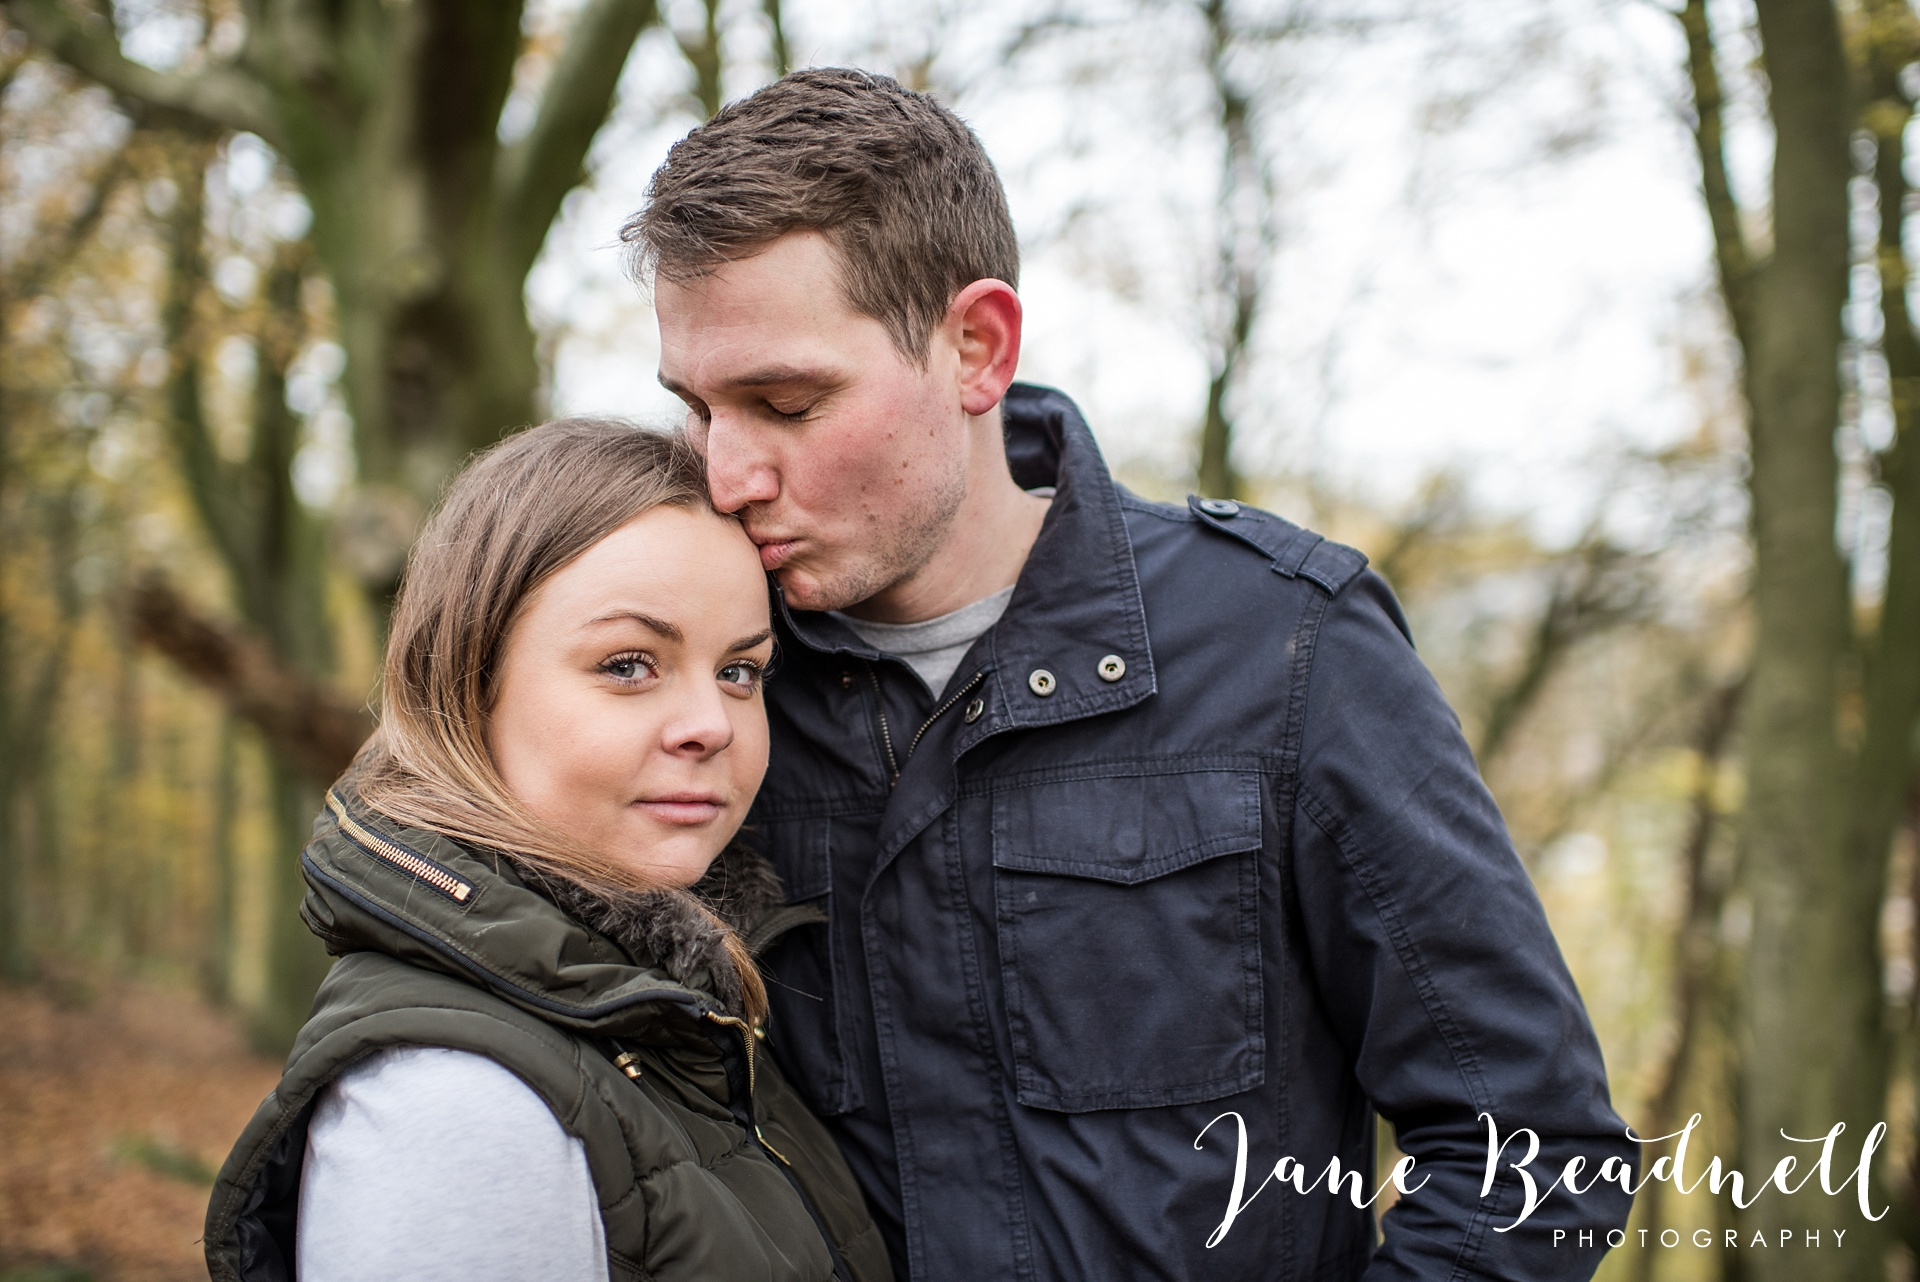 engagement-shoot-yorkshire-wedding-photographer-jane-beadnell-photography-uk-and-destination-wedding-photographer-engagement-shoot_0039